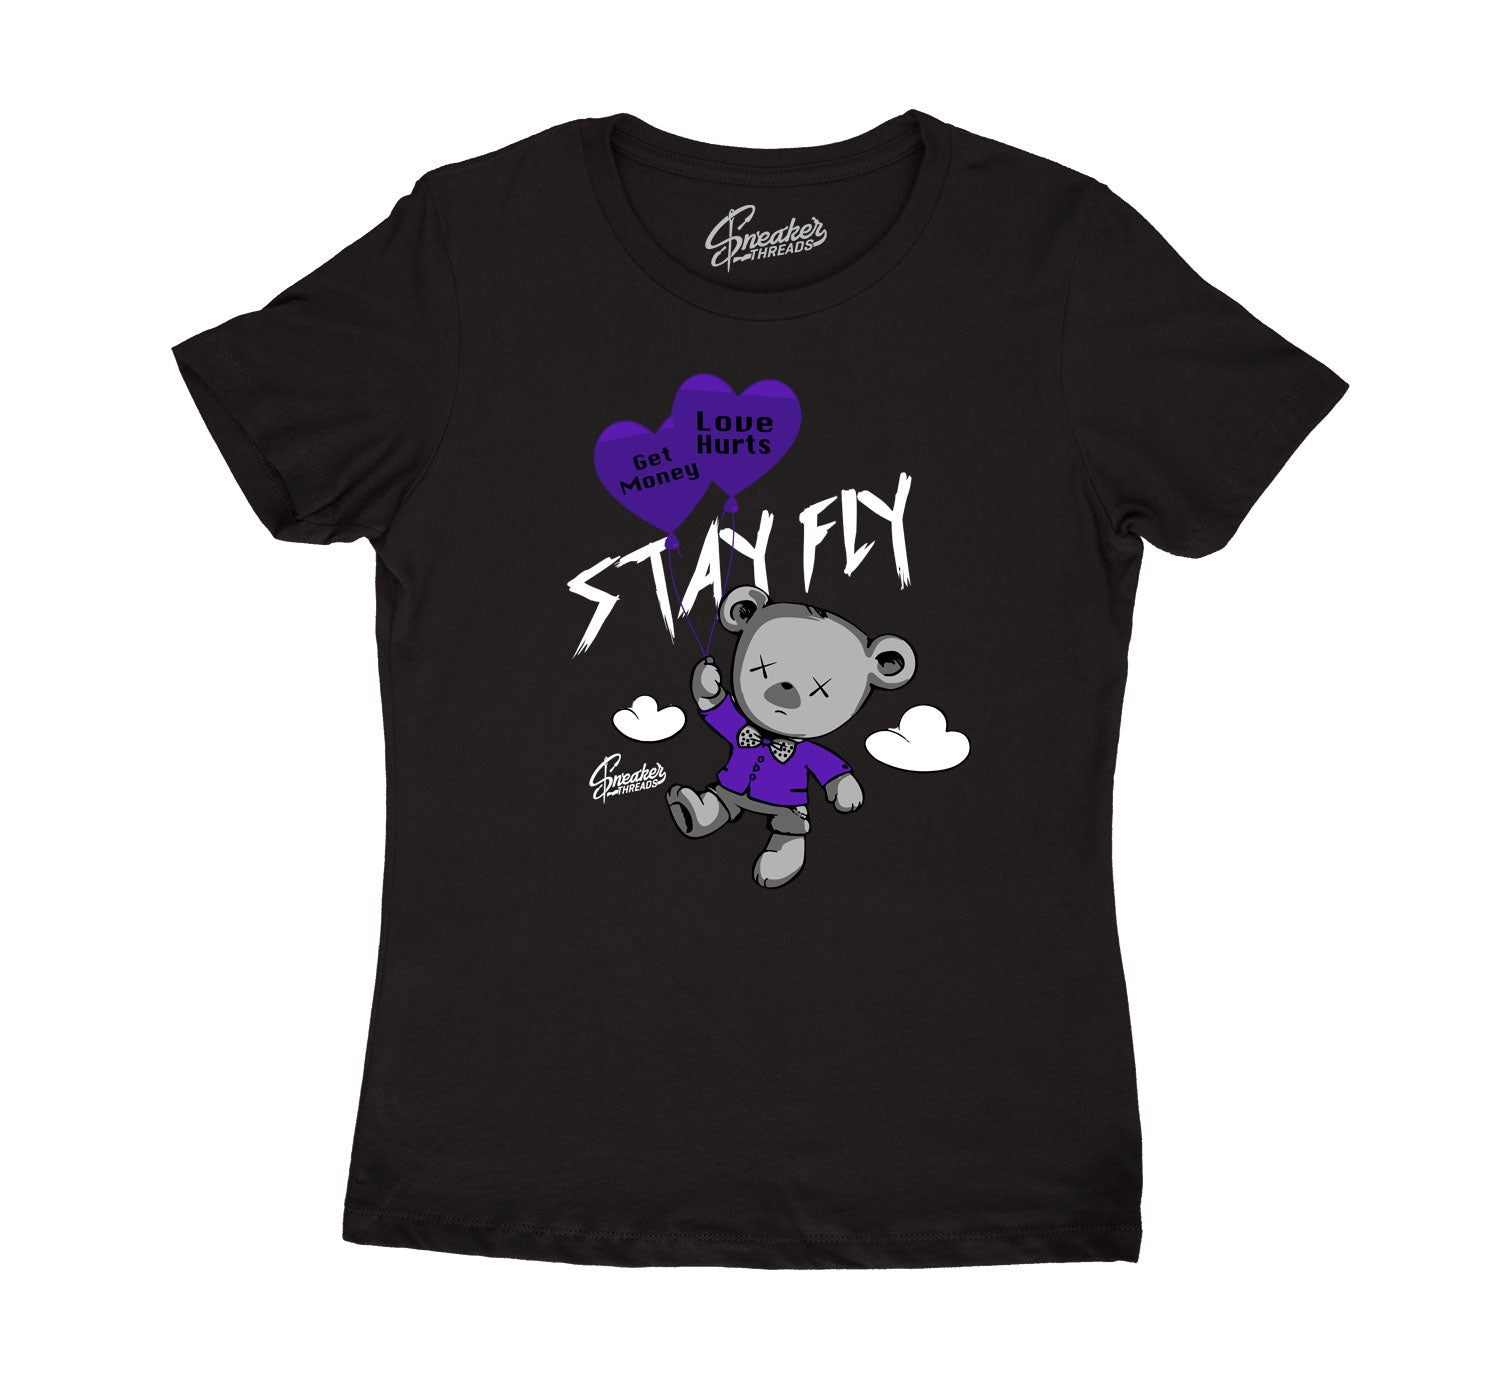 Womens Dark Concord 12 Shirt - Money Over Love - Black